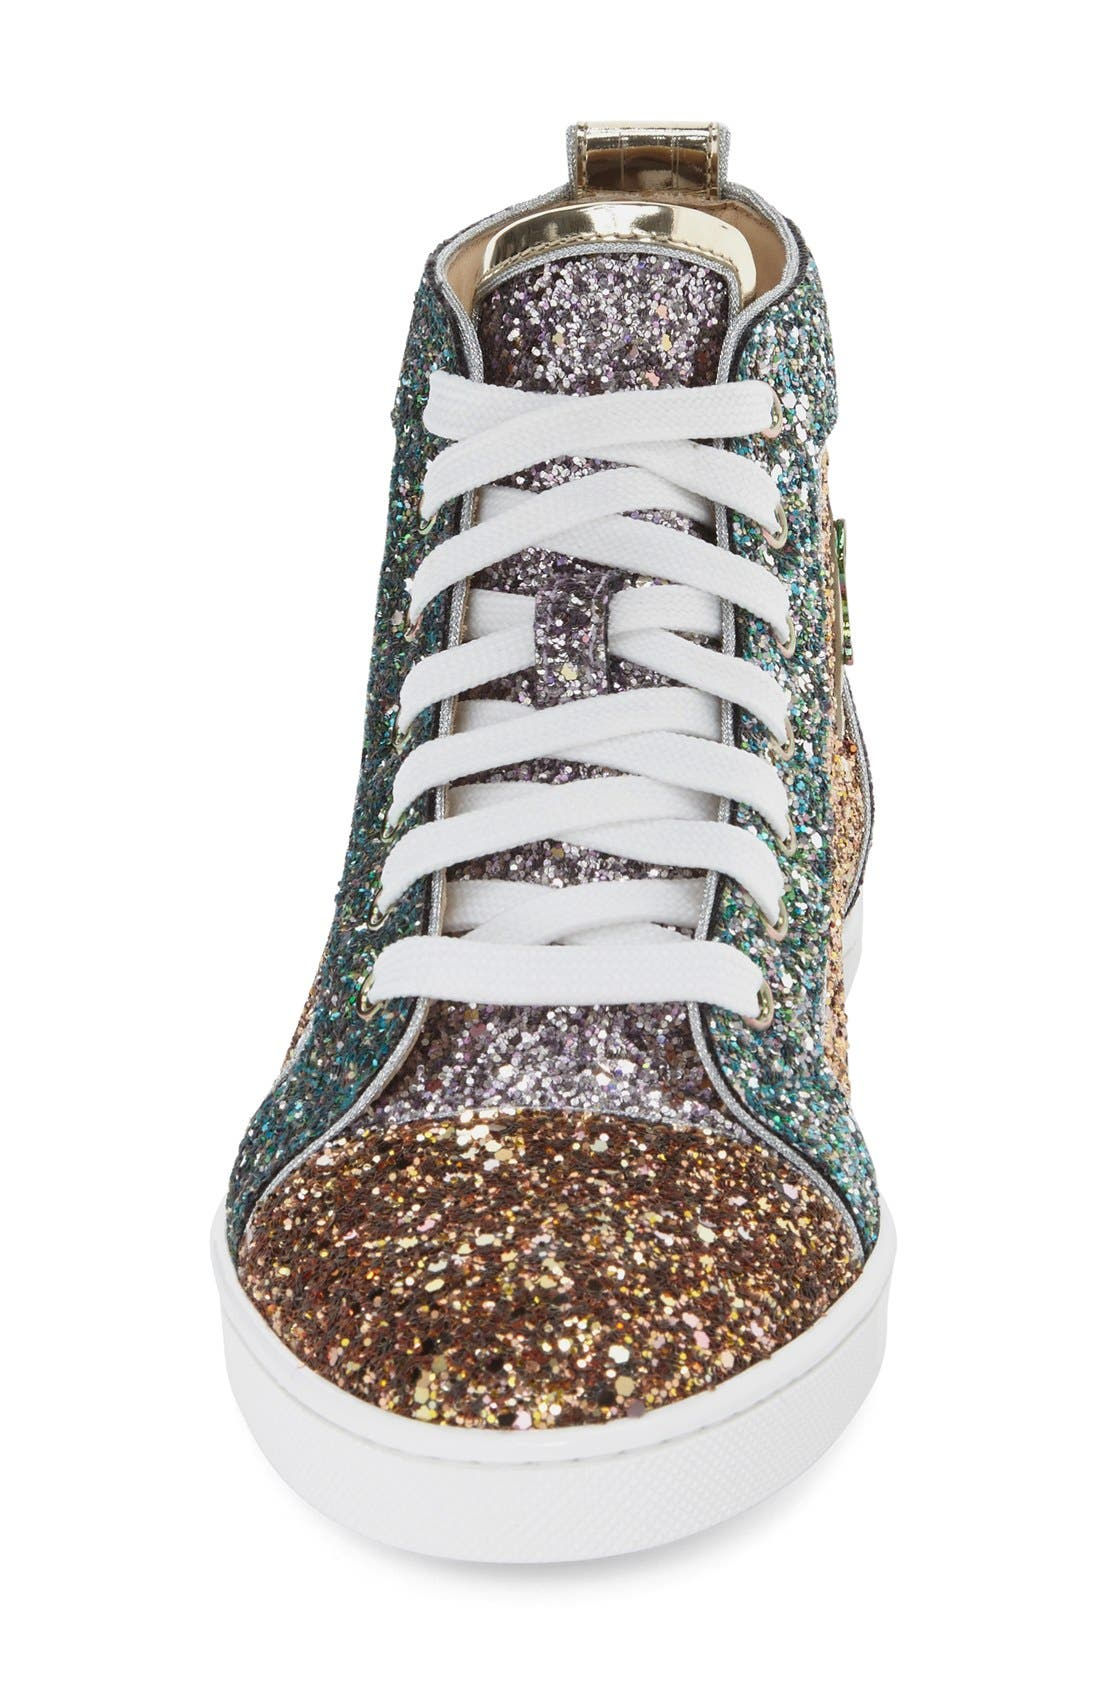 Bip Bip High Top Sneaker,                             Alternate thumbnail 15, color,